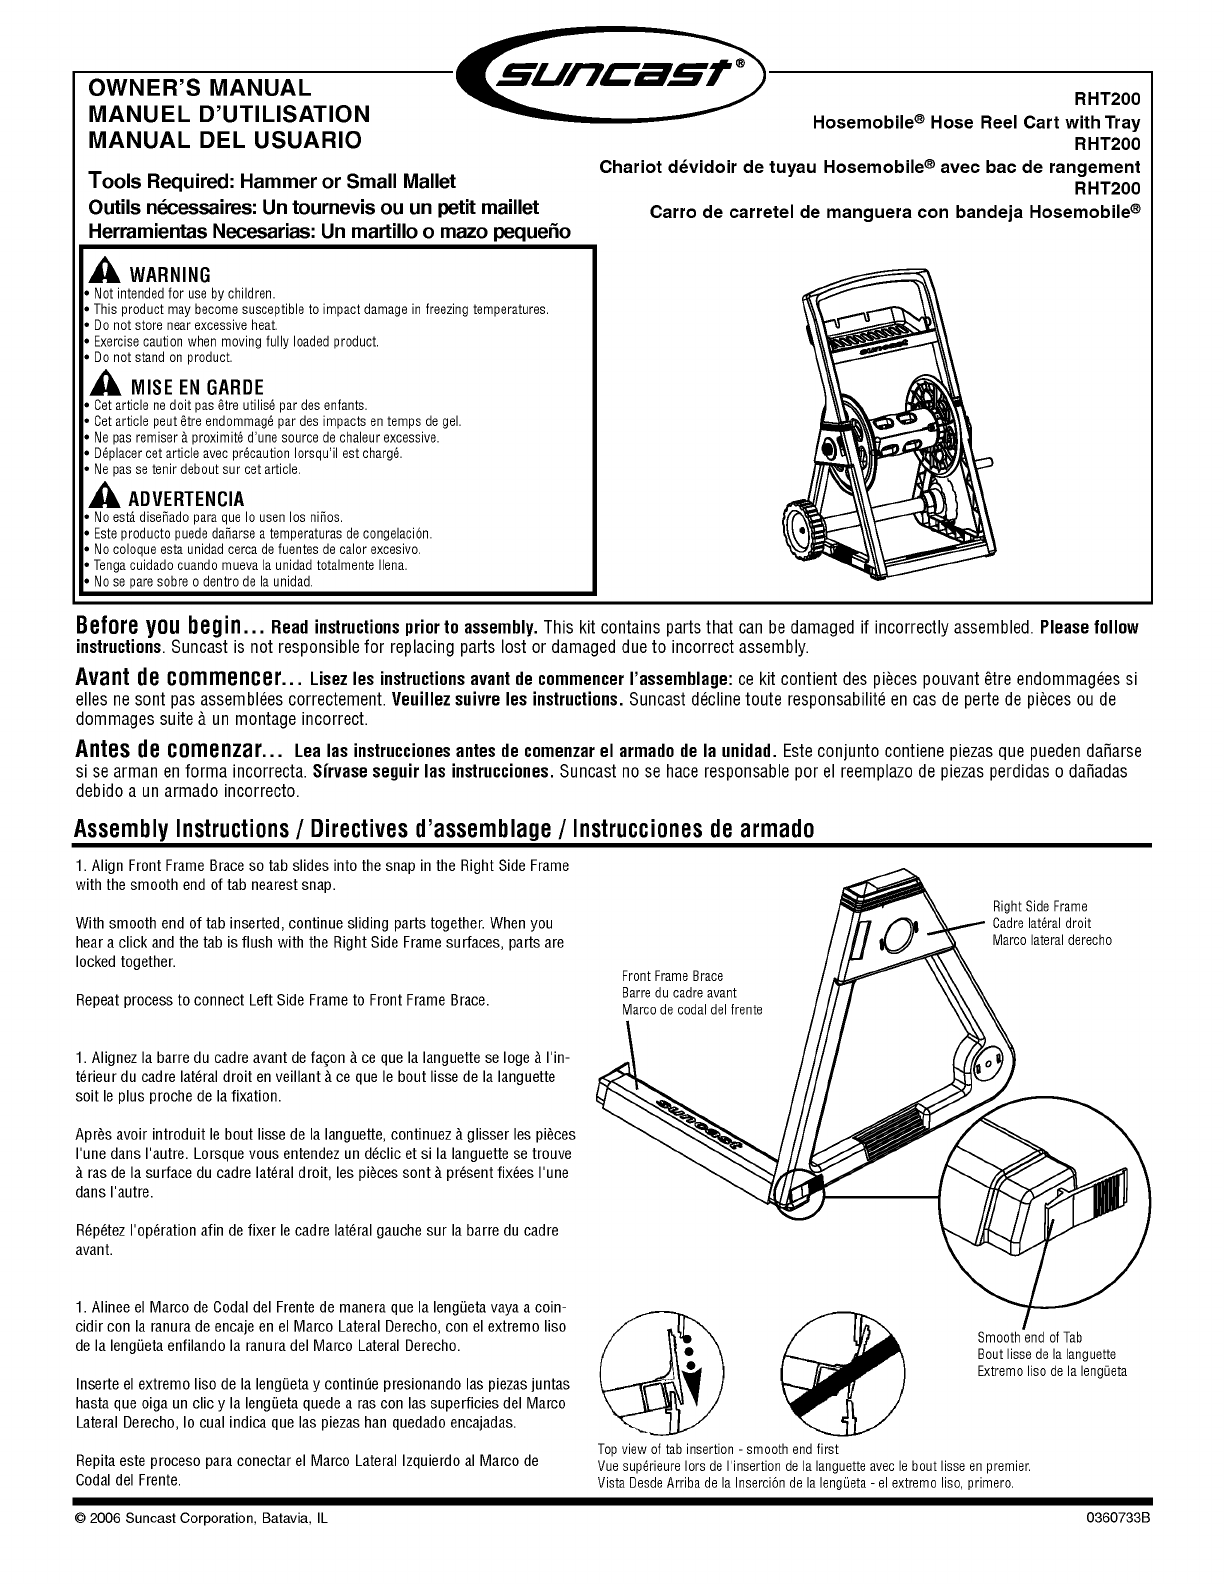 Suncast Hose Reel Cart Instruction Manual | ManualsOnline.com | DIY ...